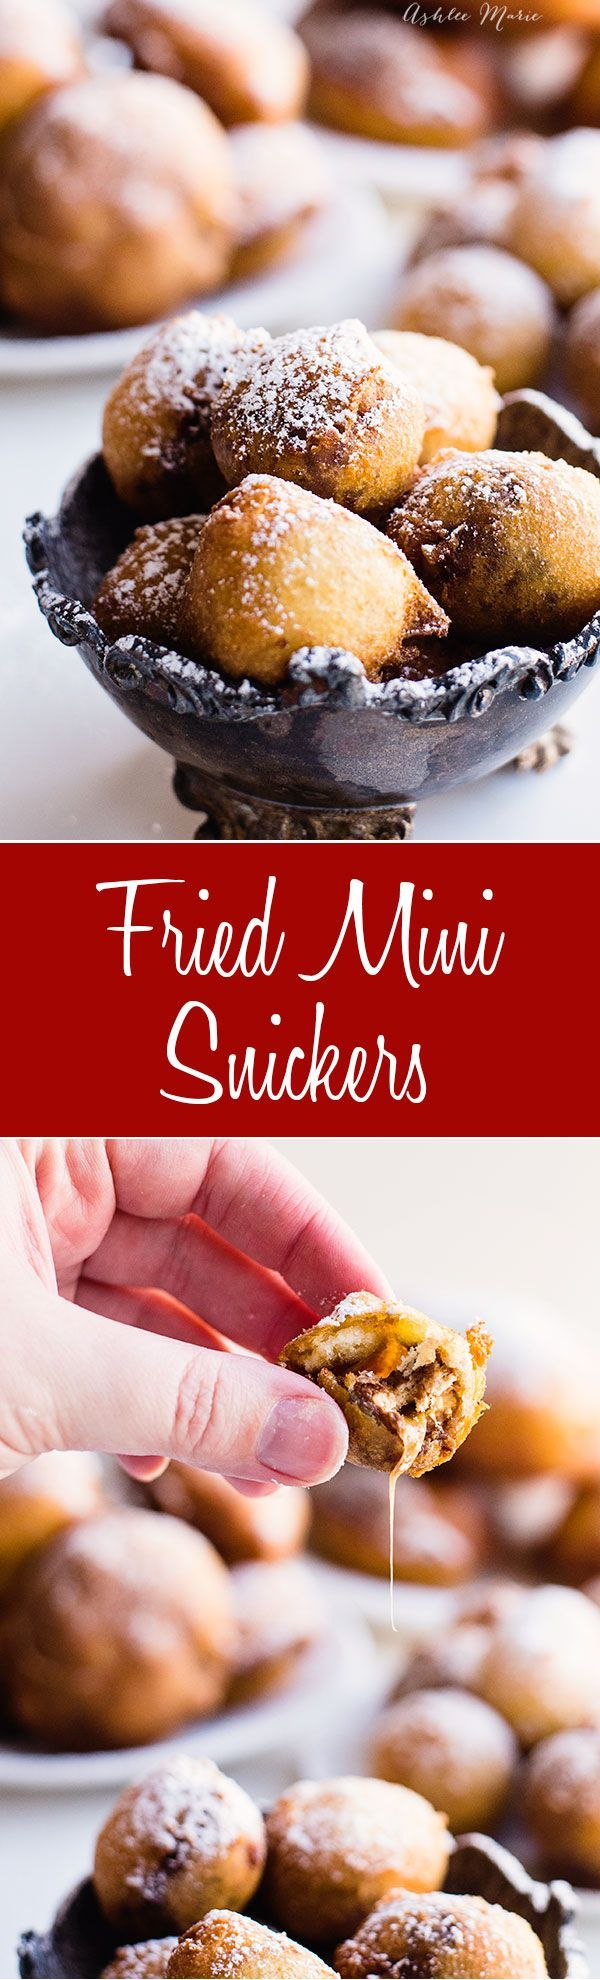 Fried Mini snickers (or other mini candy bars) are easy to make and SO delicious, you'll get a warm melted candy center fried in a sweet batter - recipe and video tutorial